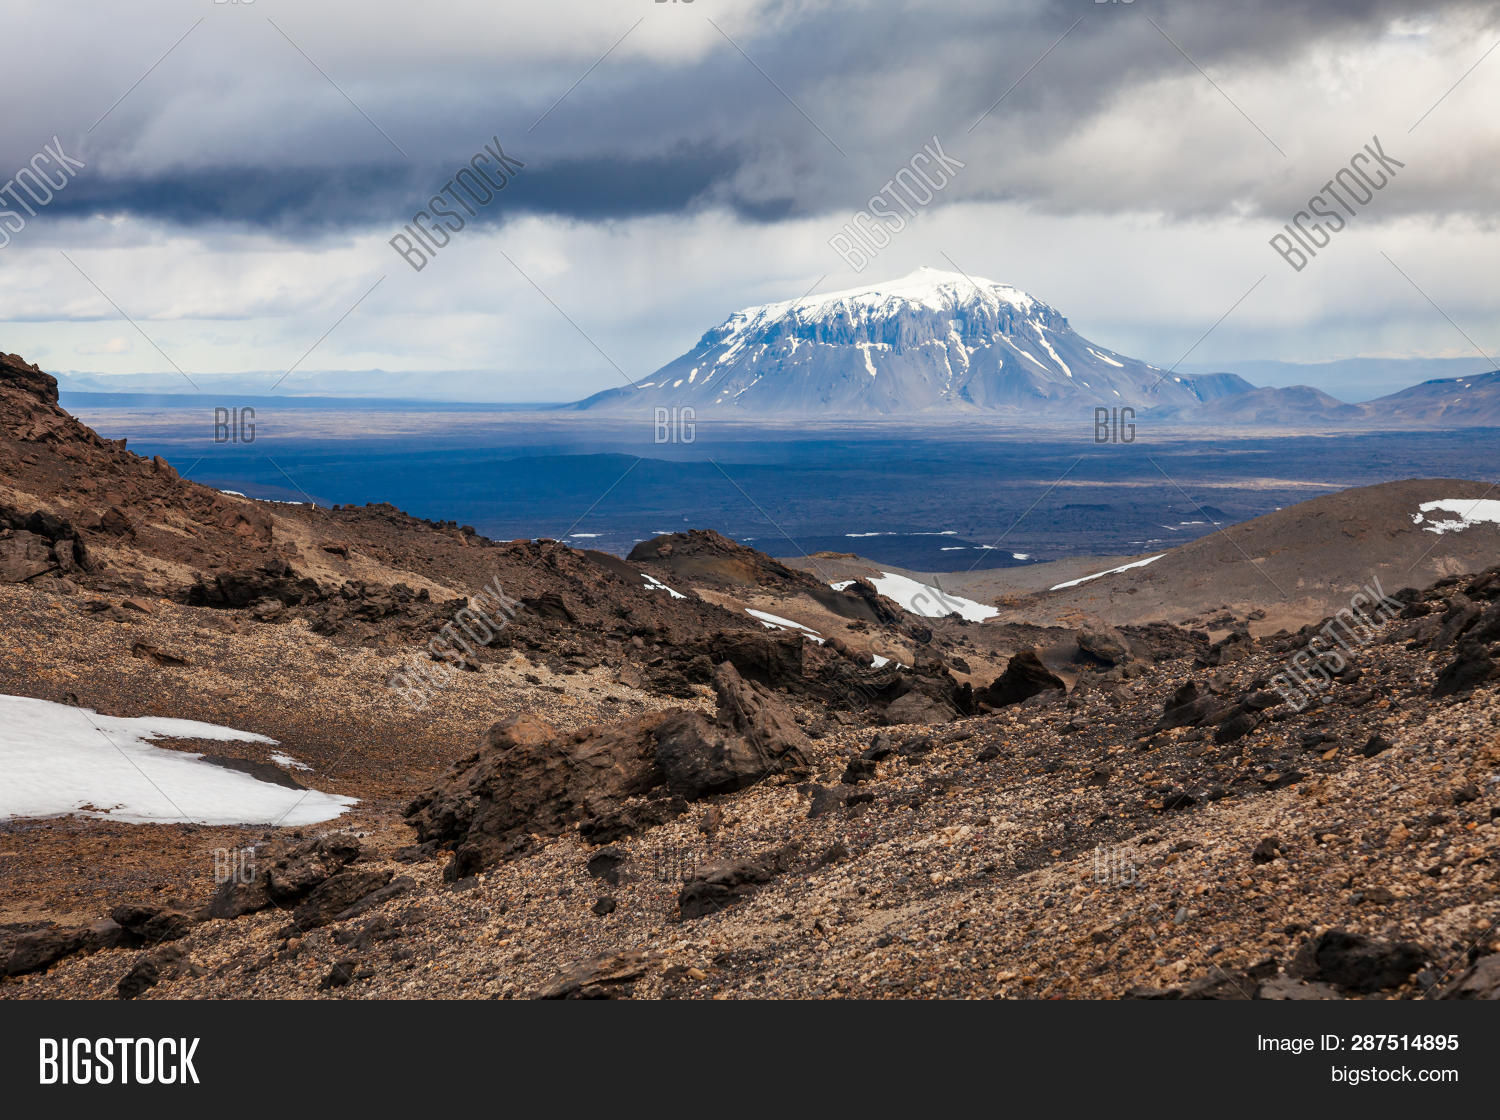 Stormy Clouds Over Image & Photo (Free Trial) | Bigstock